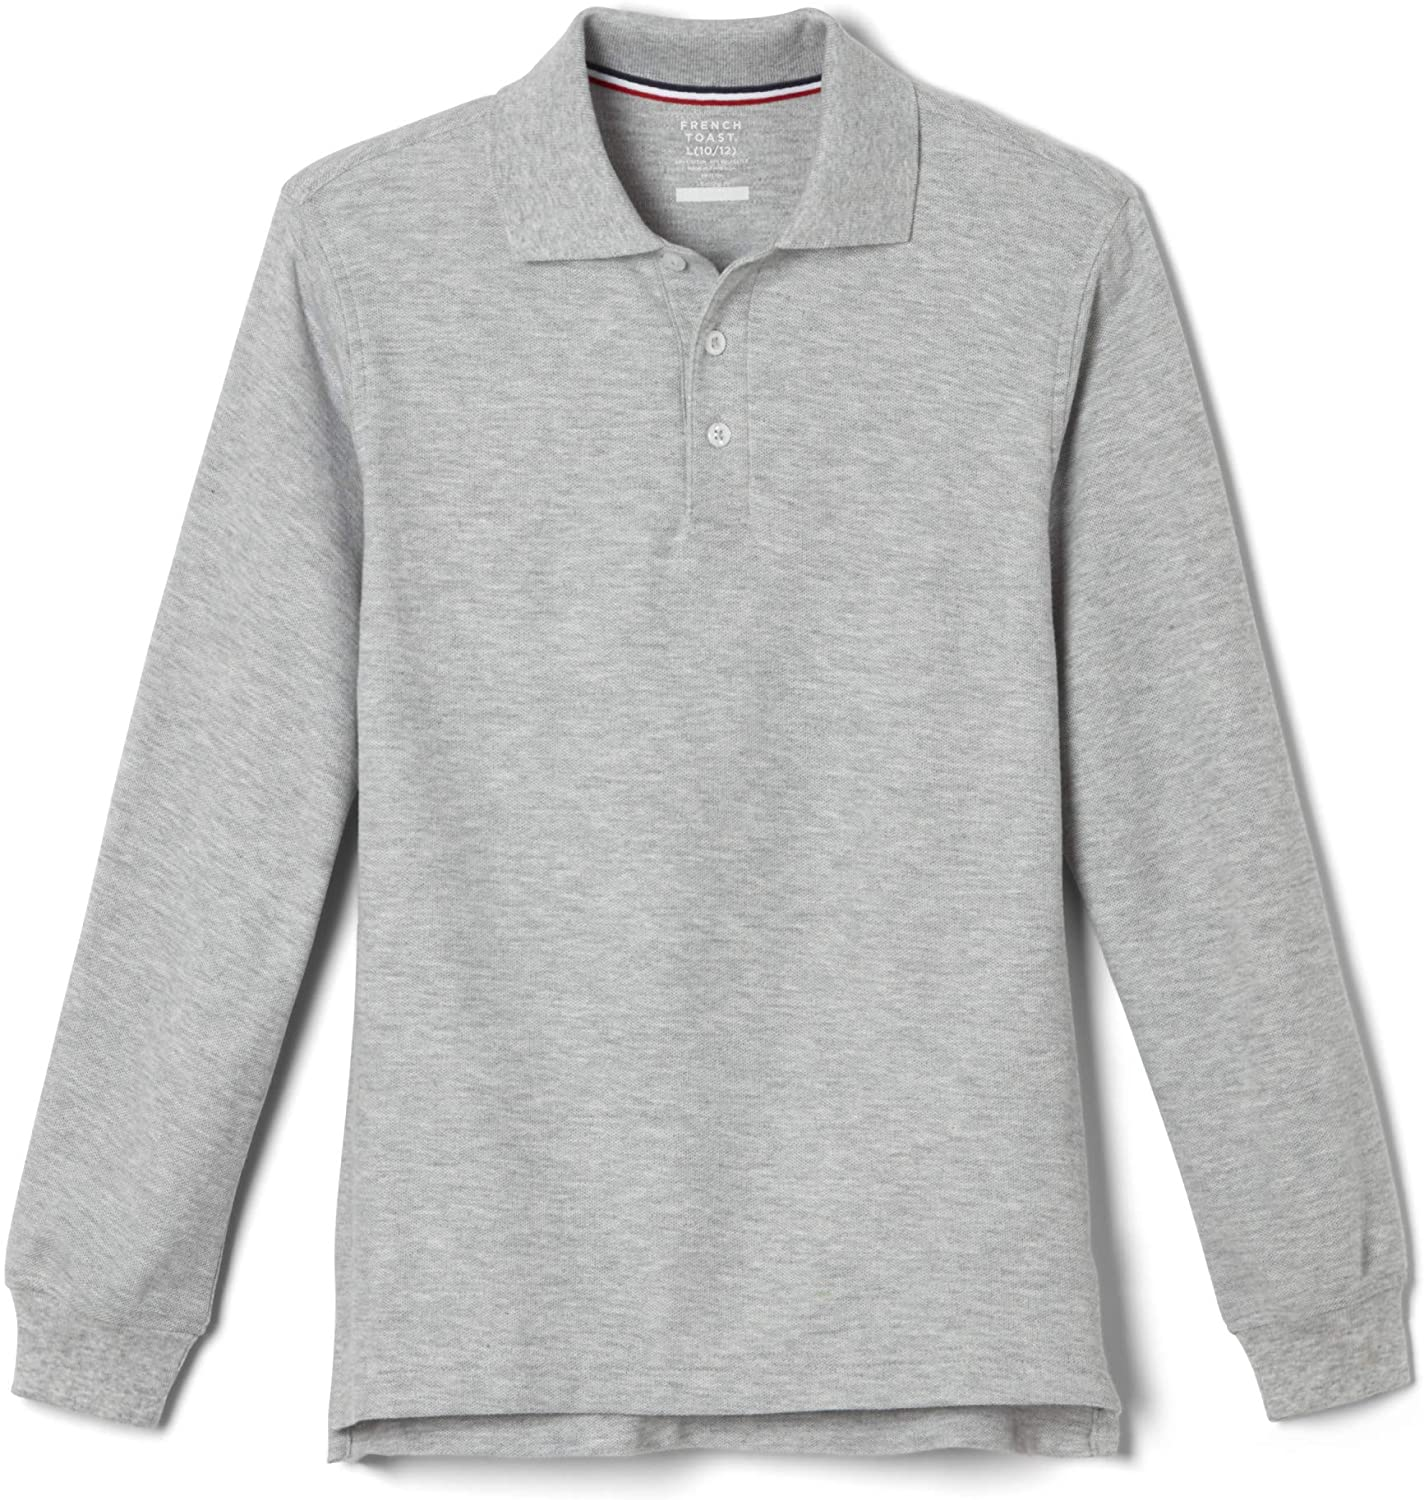 French Toast Girls' Big Long-Sleeve Pique Polo